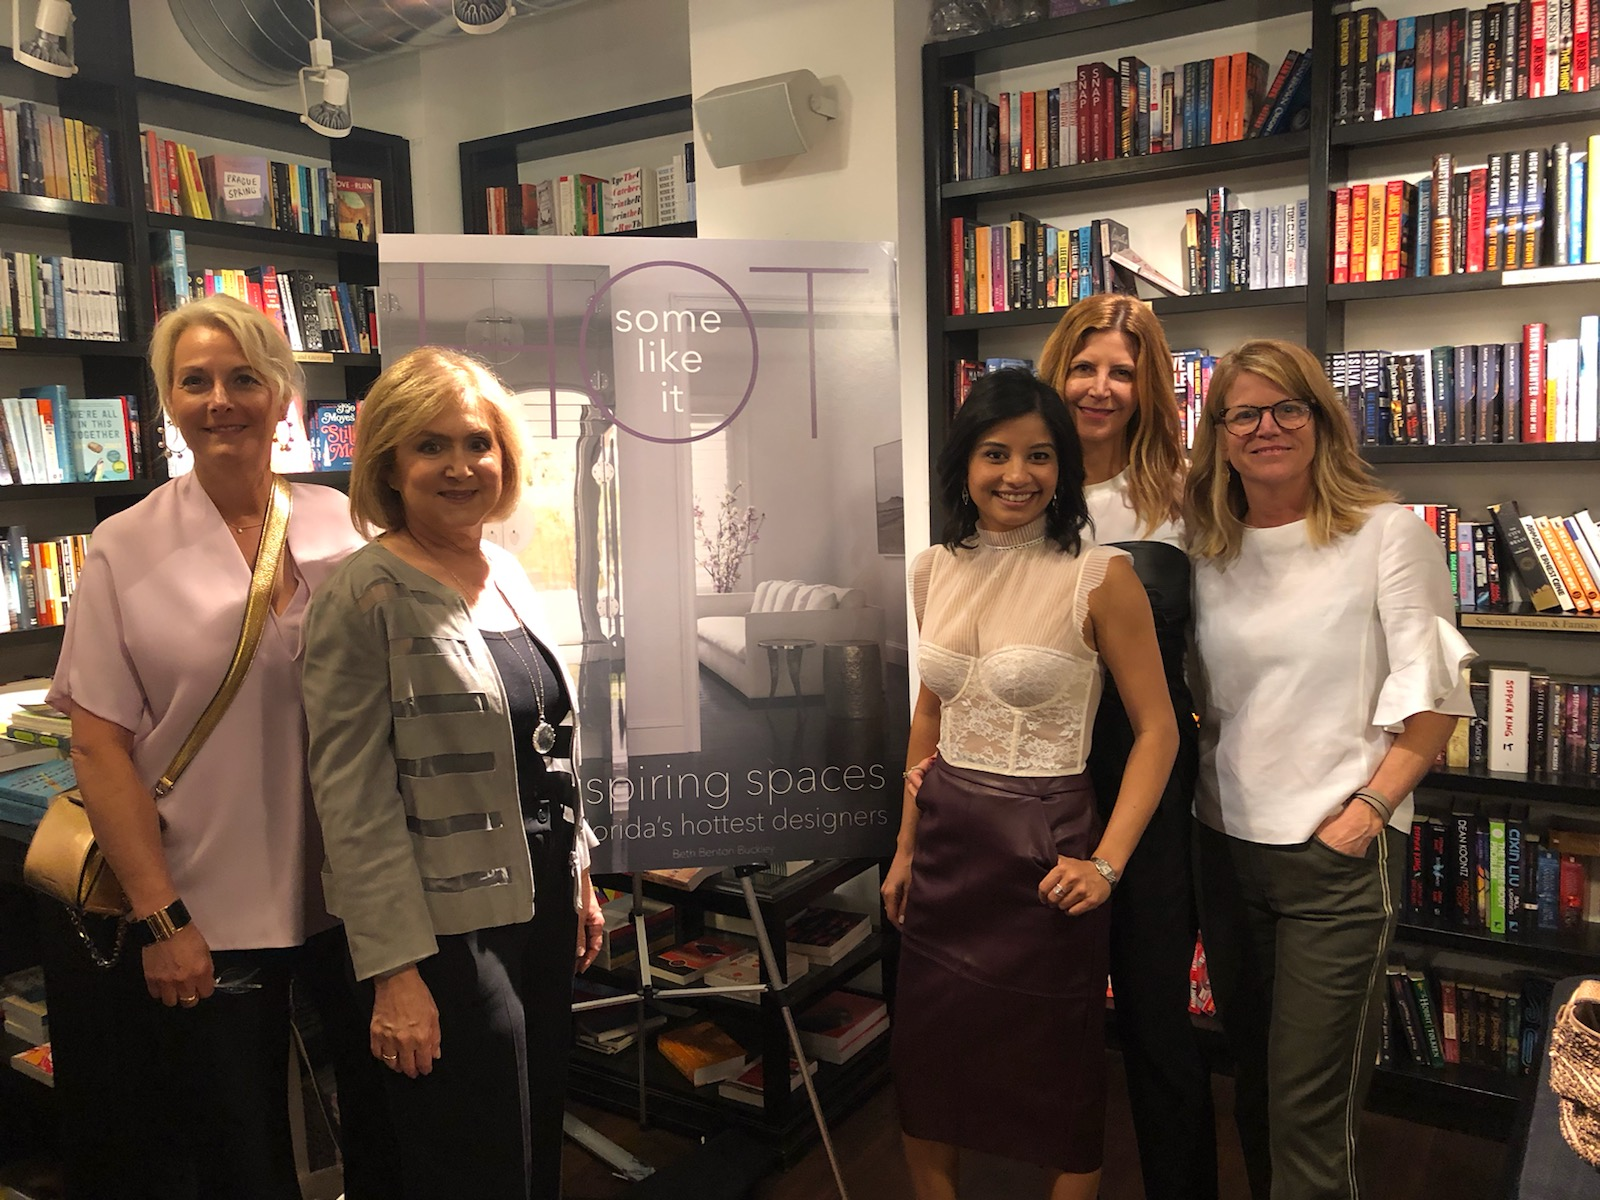 From left to right: Interior designers Amy Herman, Fanny Haim, Lachmee Chin, Sharron Lannan, and principal publisher Beth Buckley.